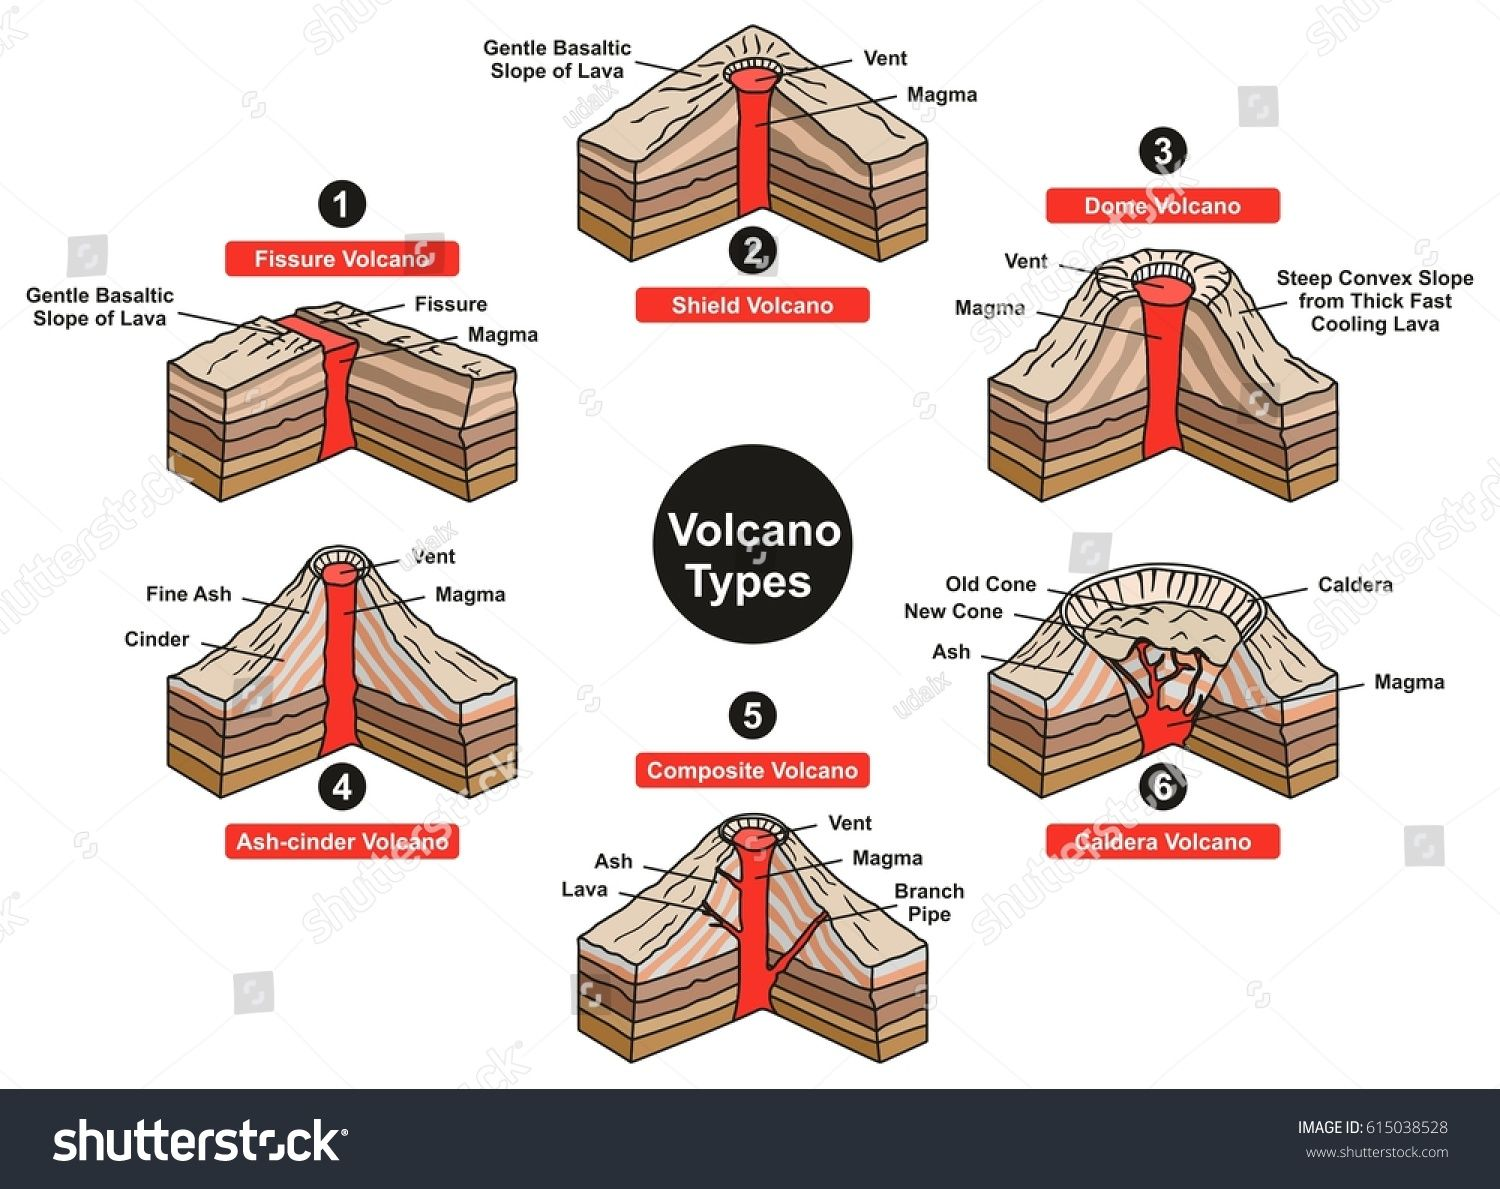 Volcano Types Infographic Diagram Including Fissure Shield